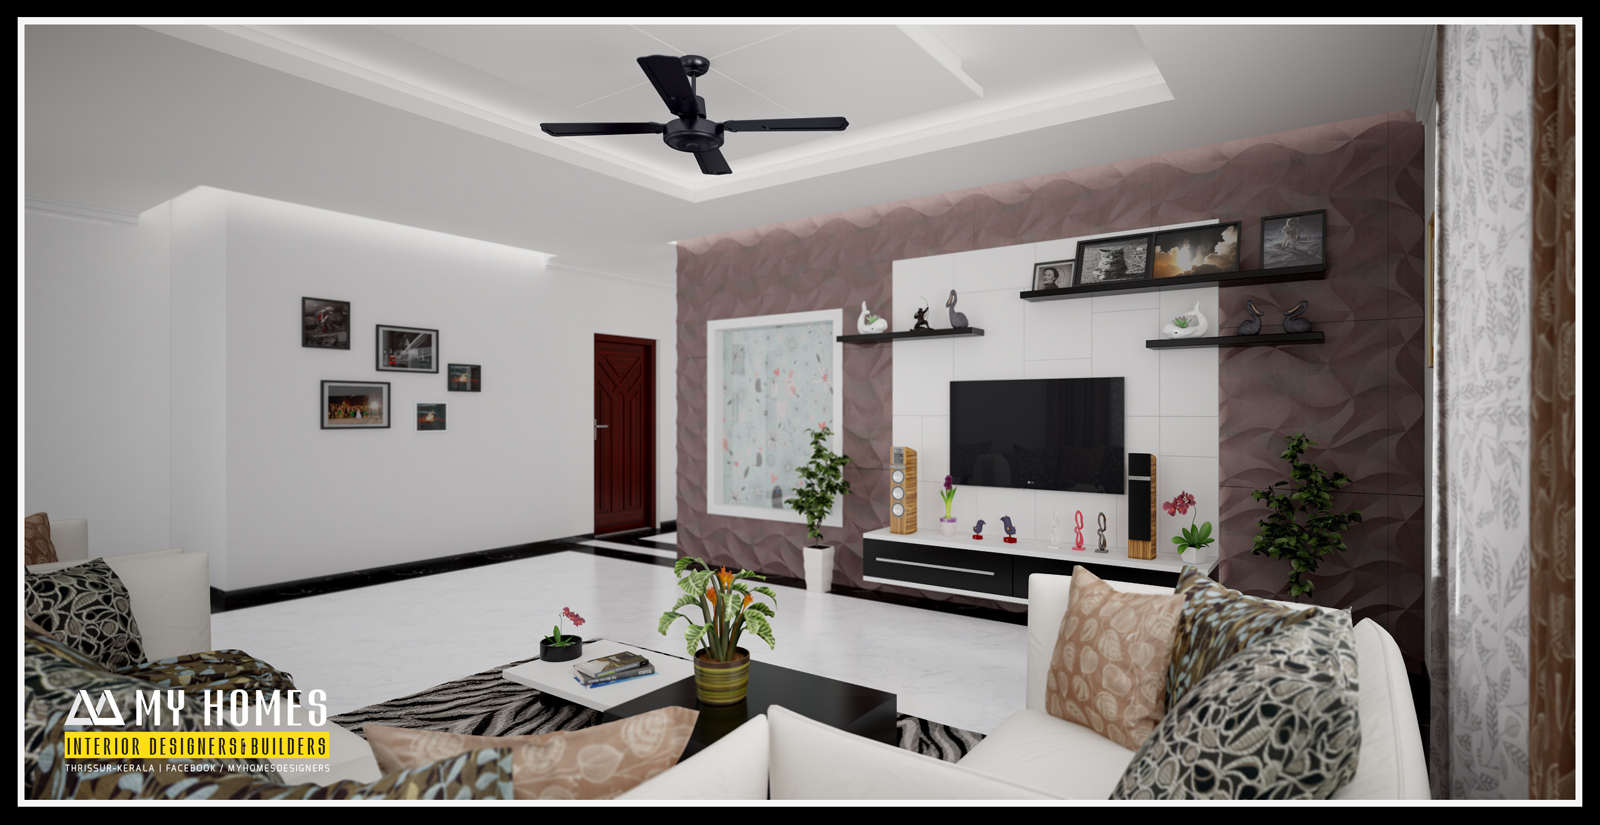 Kerala interior design ideas for homes house design in india - Interior design ideas for indian homes ...